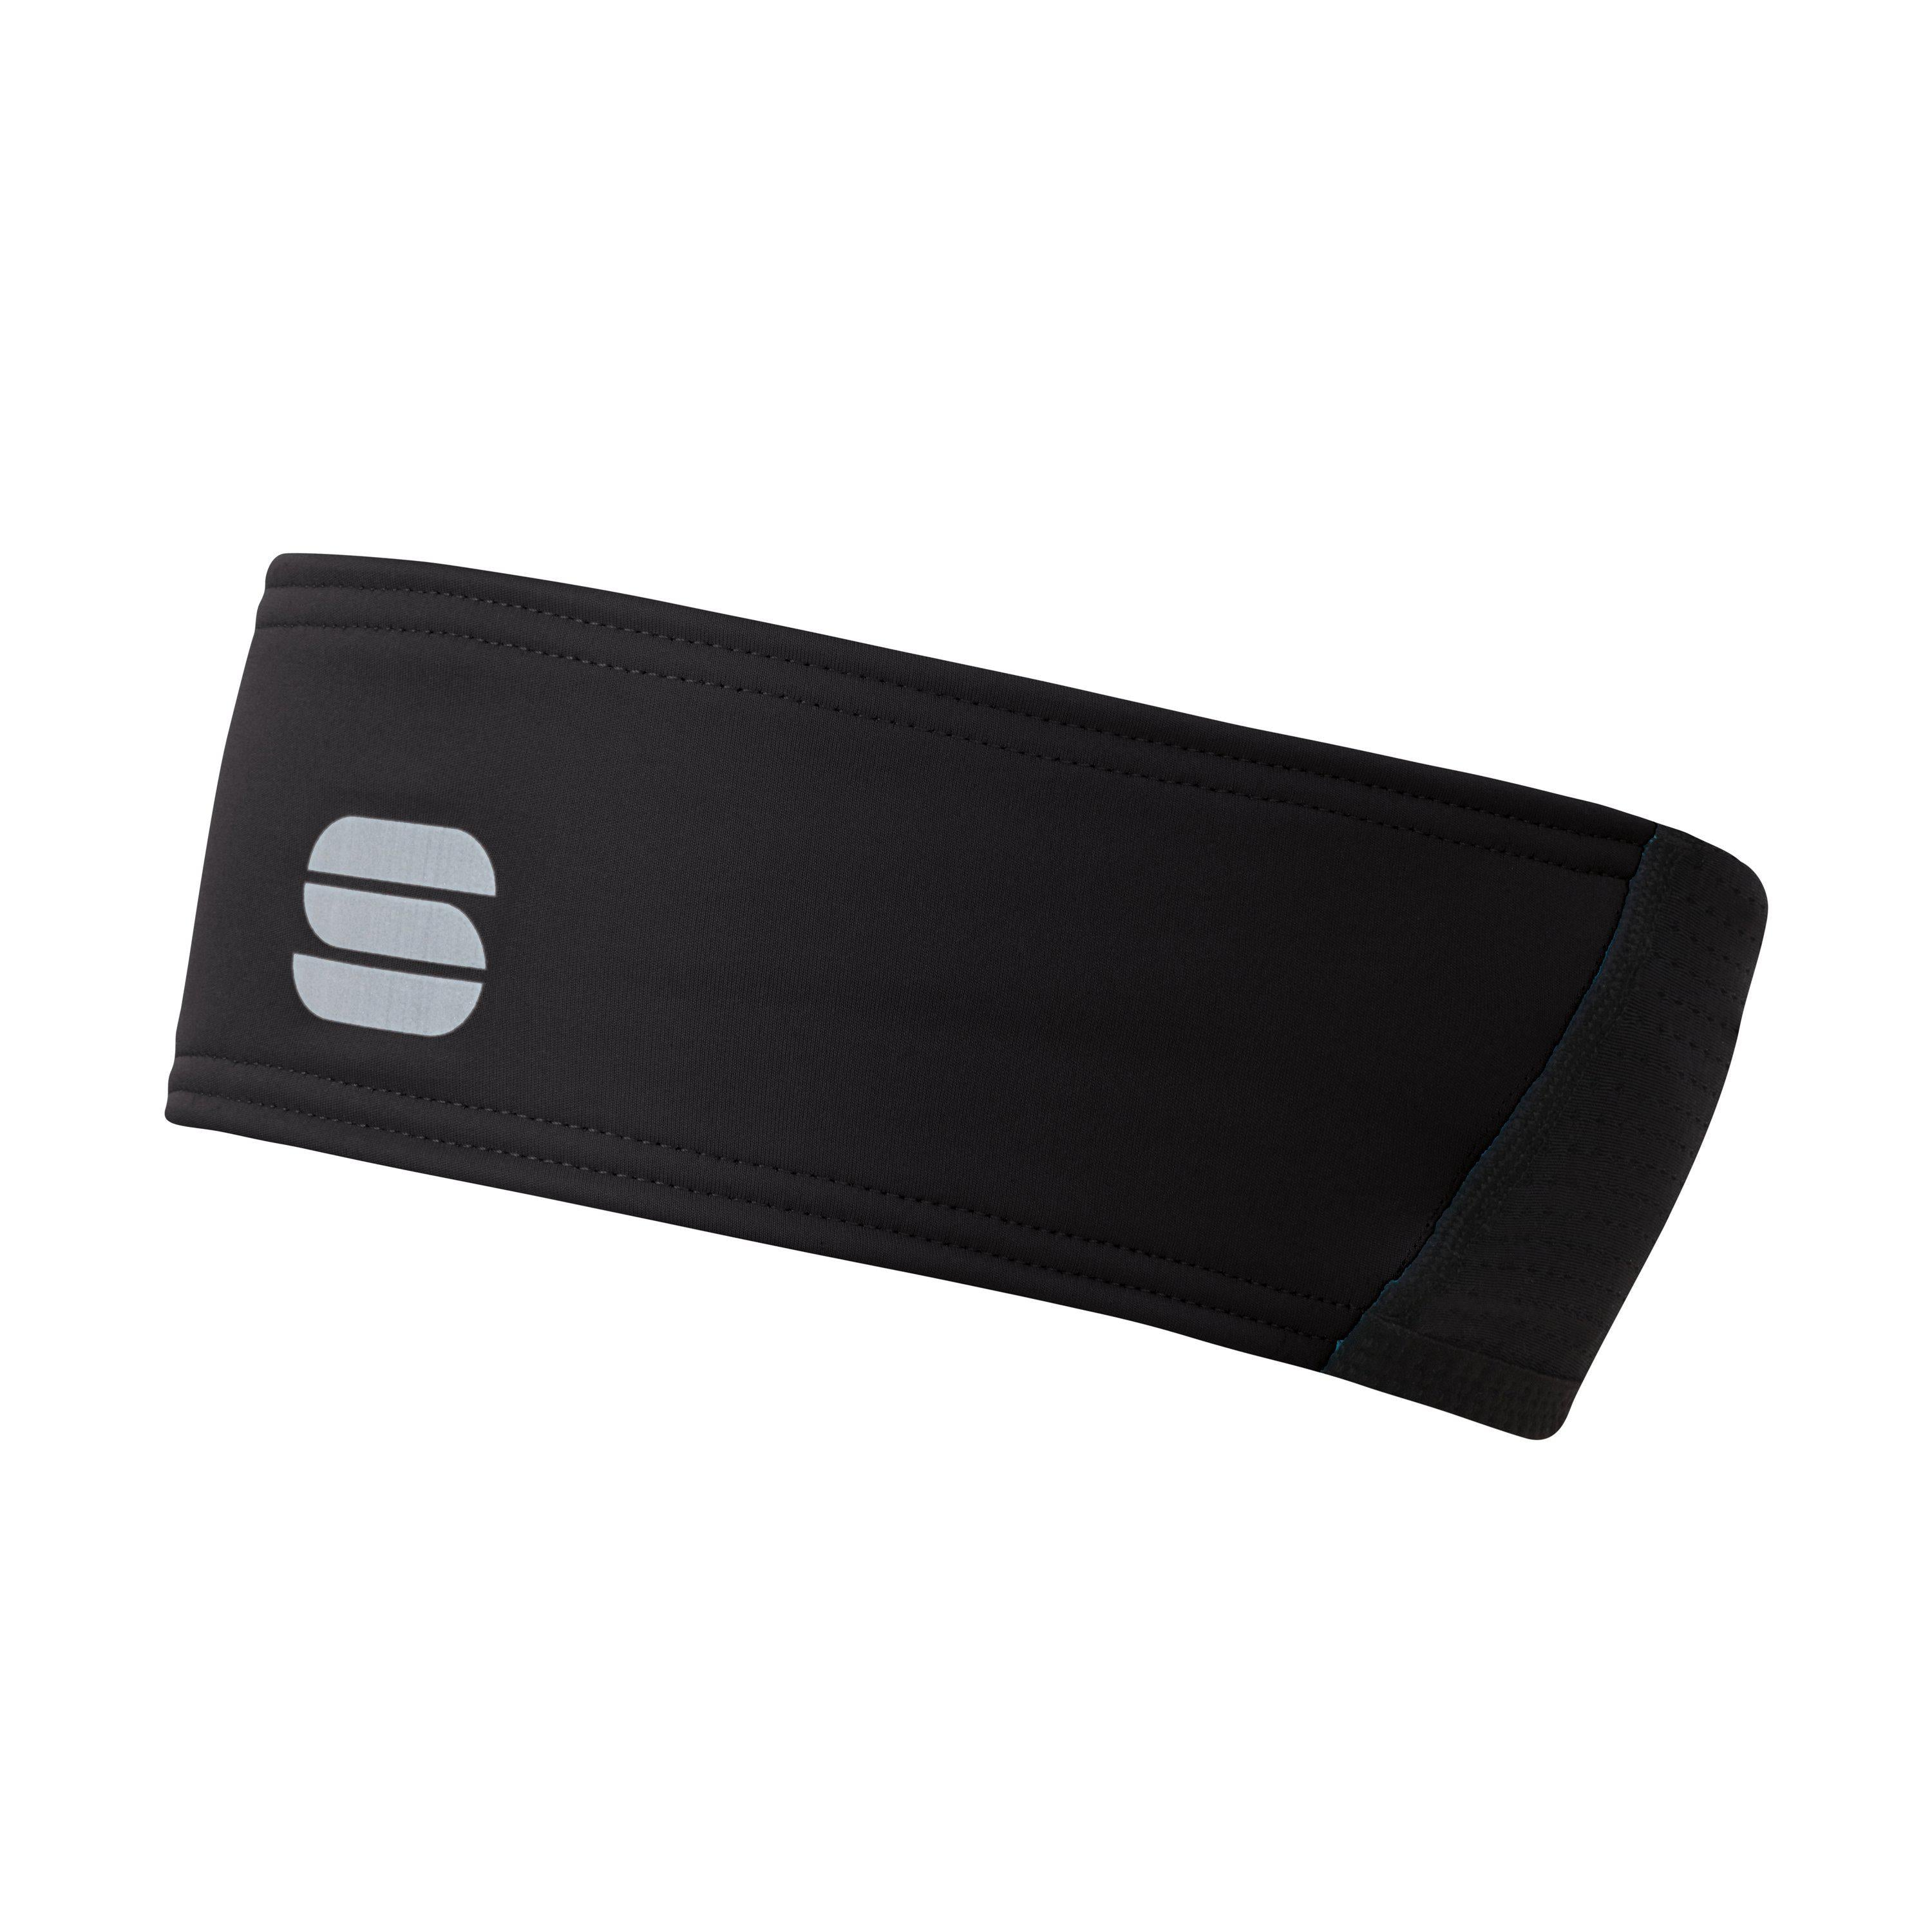 Sportful-Sportful Air Protection Headband-Black/Black-UNI-SF205510028-saddleback-elite-performance-cycling